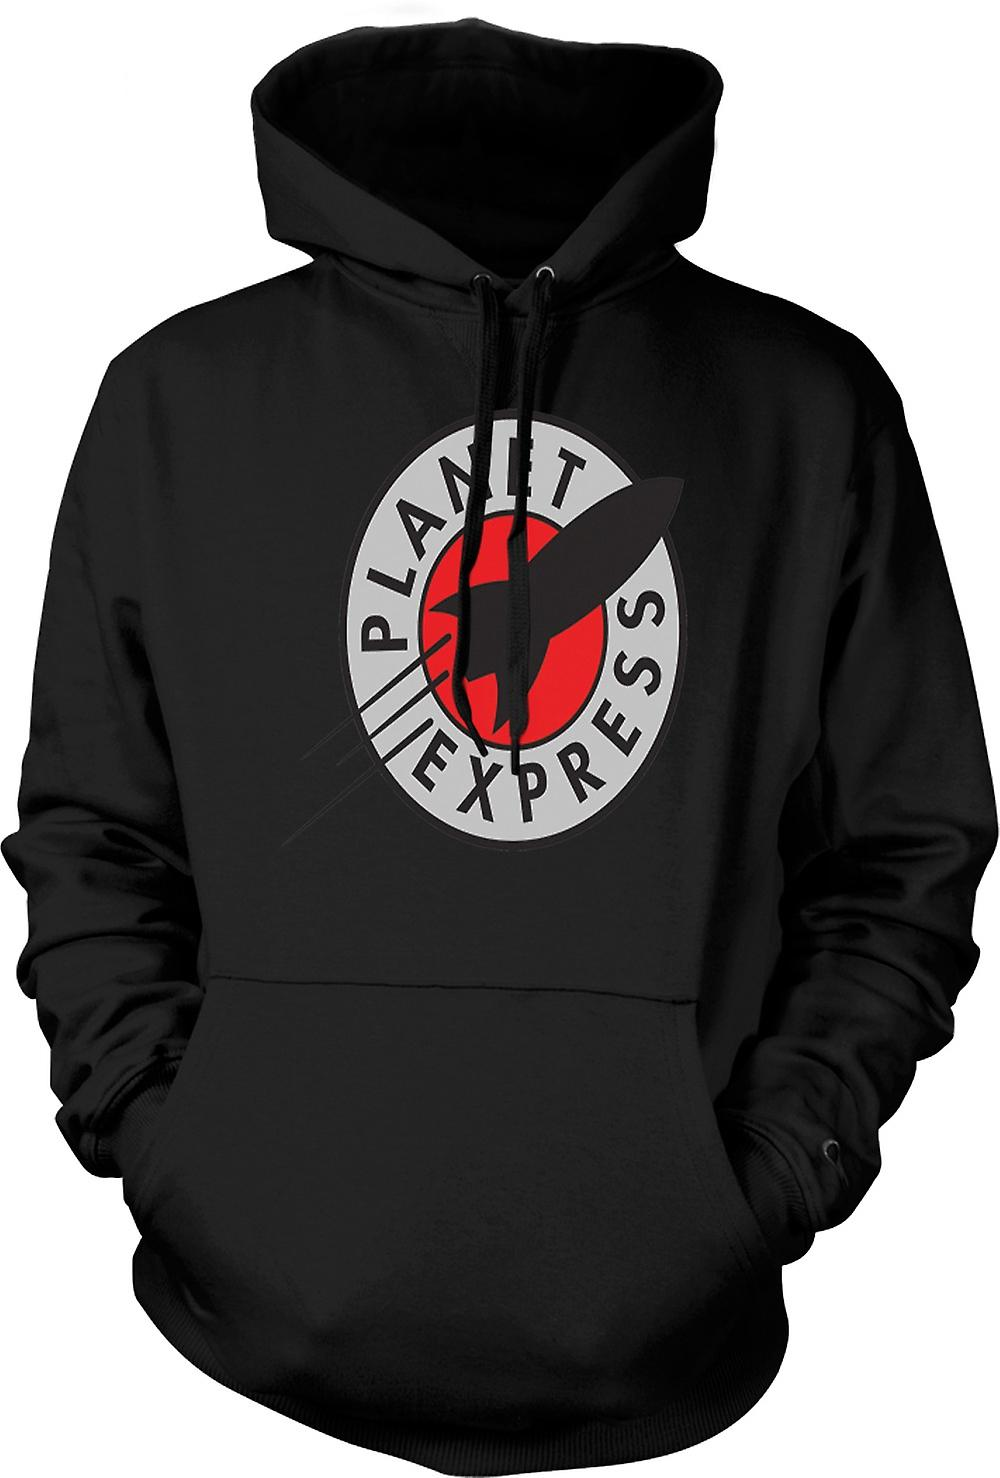 Mens Hoodie - Planet Express - preventivo